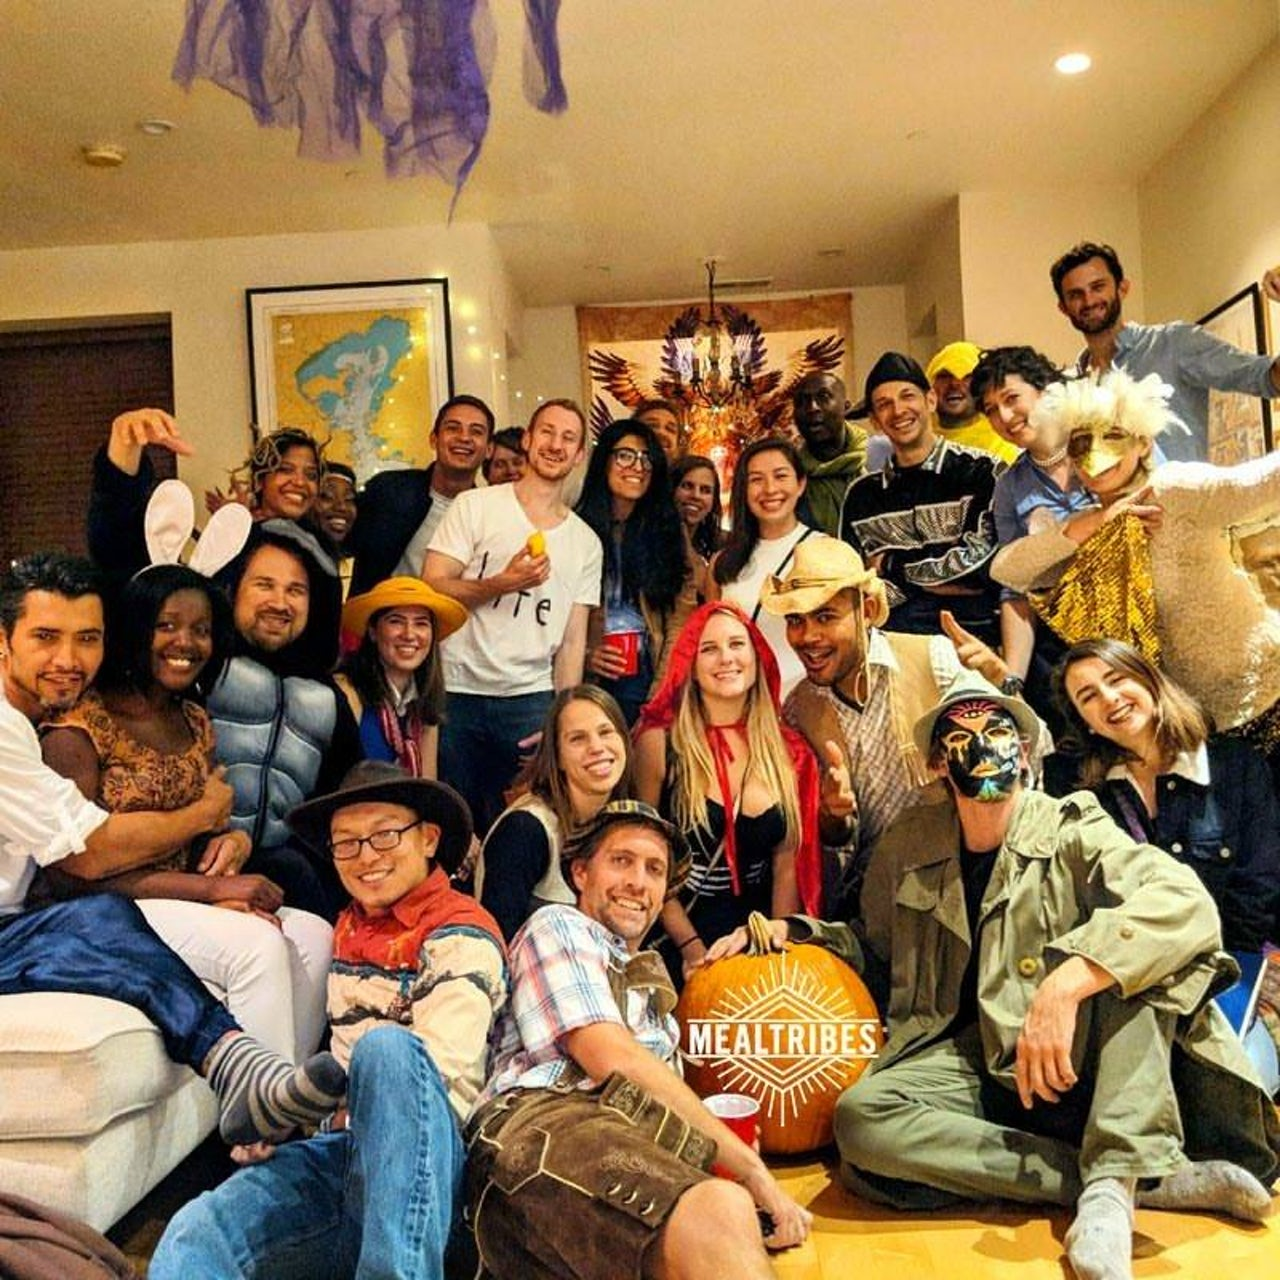 MealTribes Halloween gathering